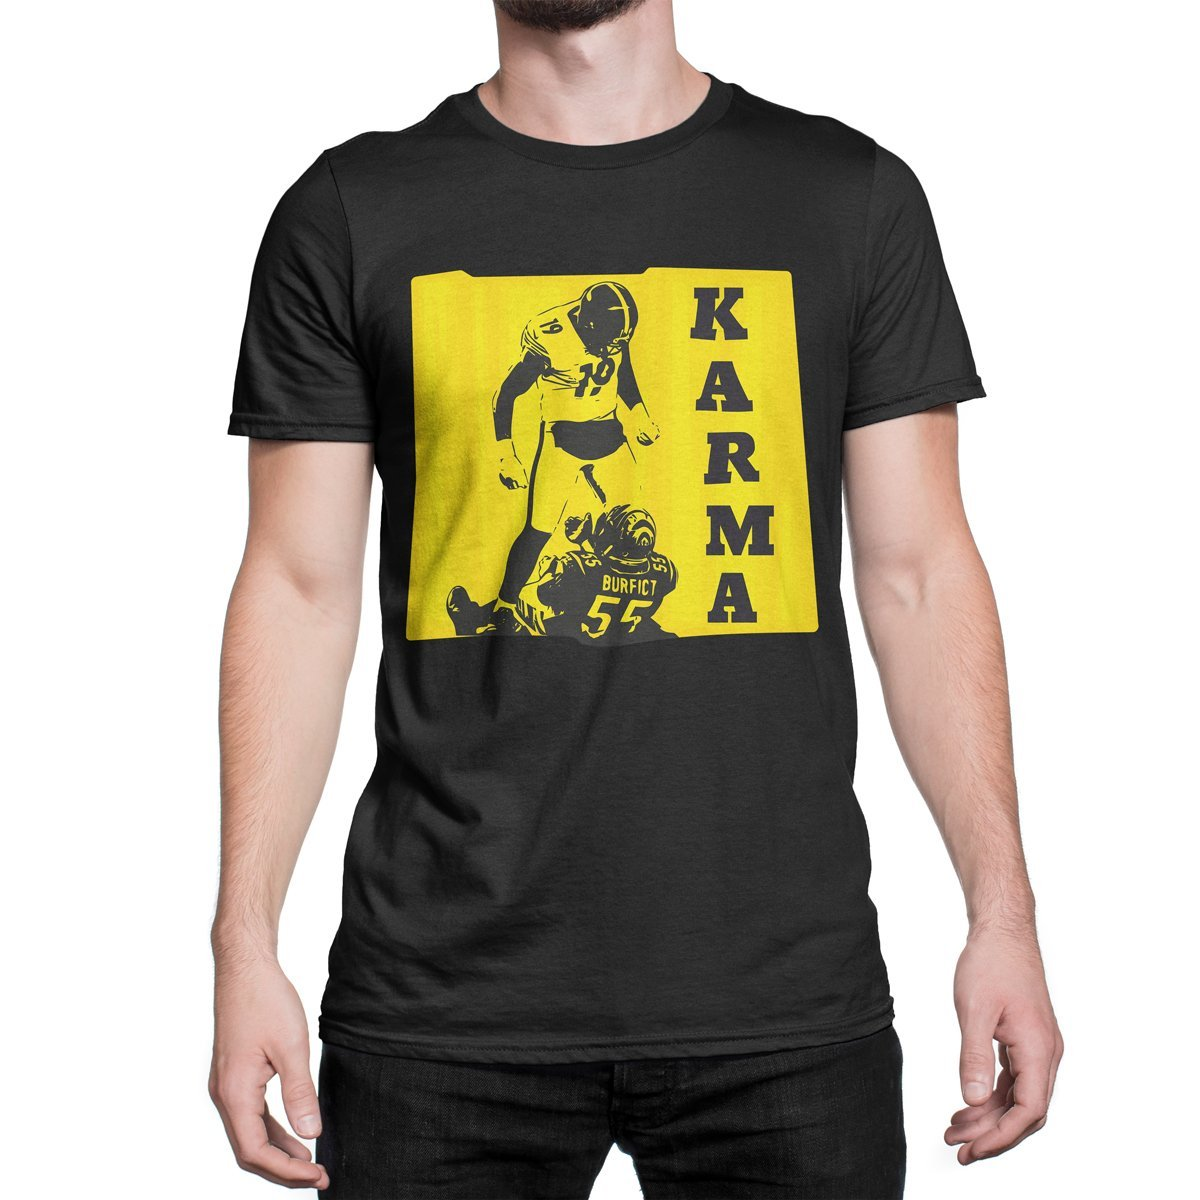 ... Amazon com Steelers Karma Shirt JuJu Smith Schuster T Shirt JuJu 906e96b1f